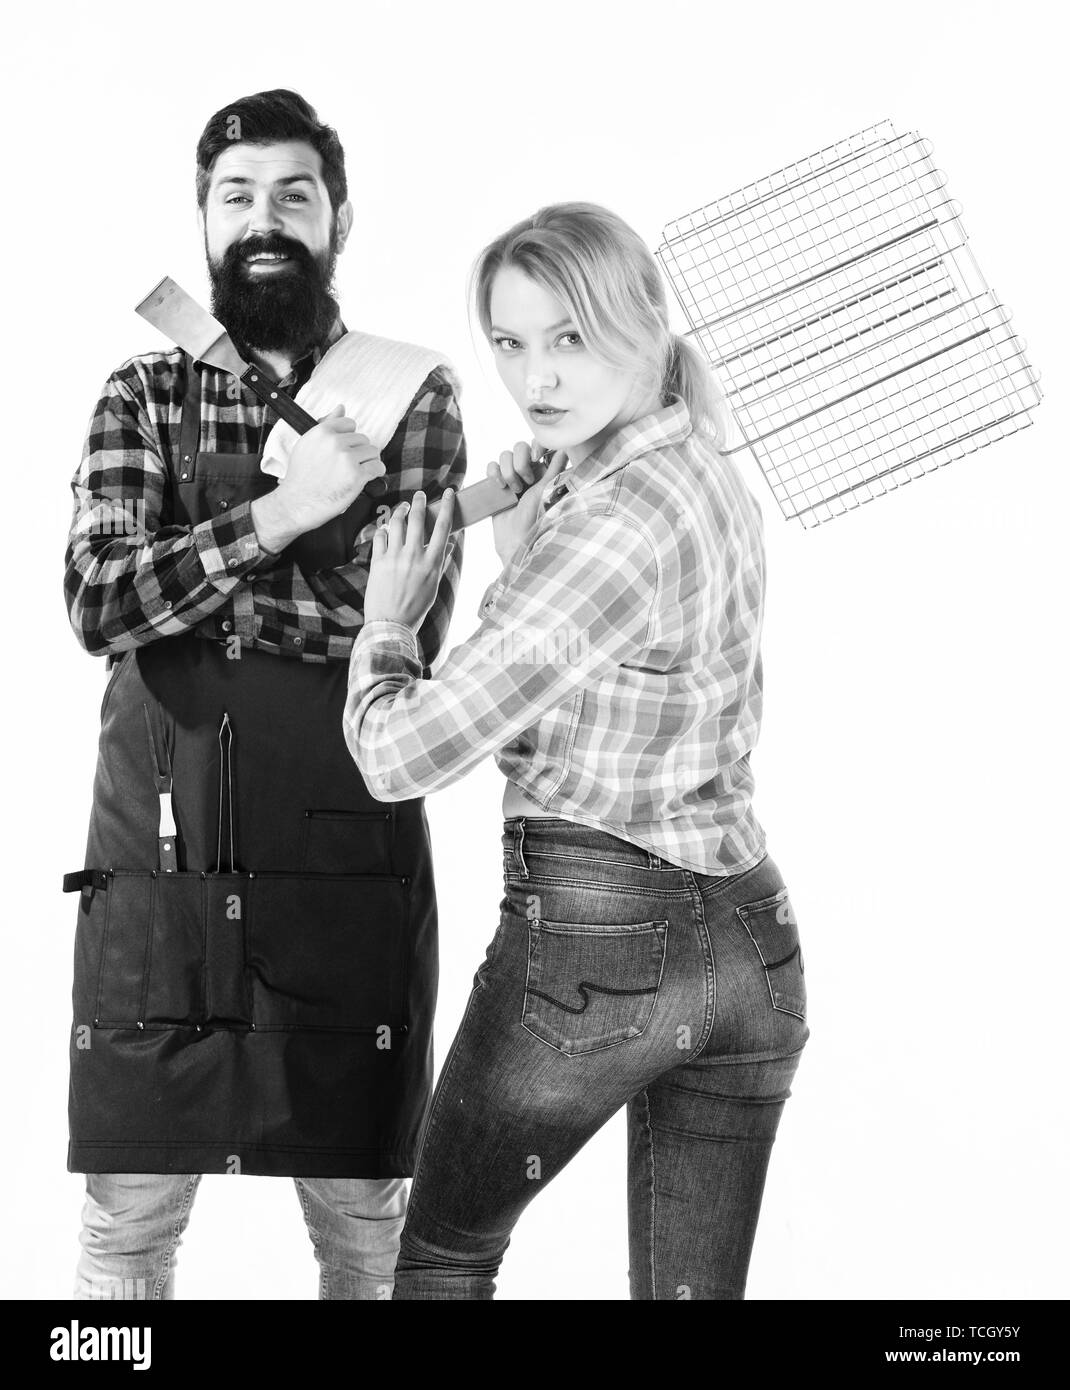 Enjoying happy moments. Family weekend. Picnic barbecue. food cooking recipe. Man bearded hipster and girl. Preparation and culinary. Couple in love hold kitchen utensils. Tools for roasting meat. - Stock Image